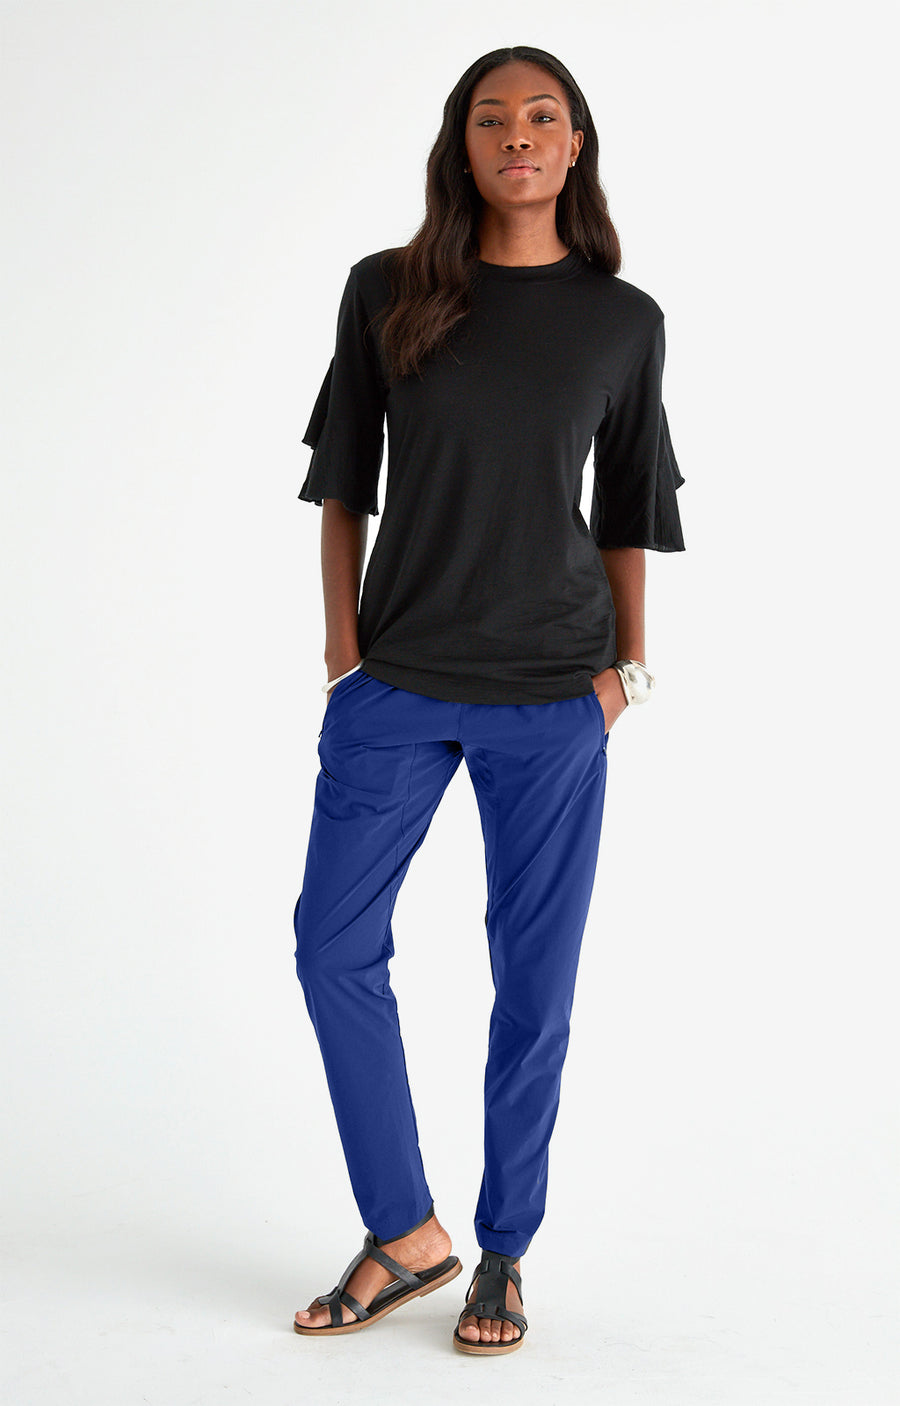 Harmonious - Relaxed Elegance and Comfort Travel Pants in NEW BLUE